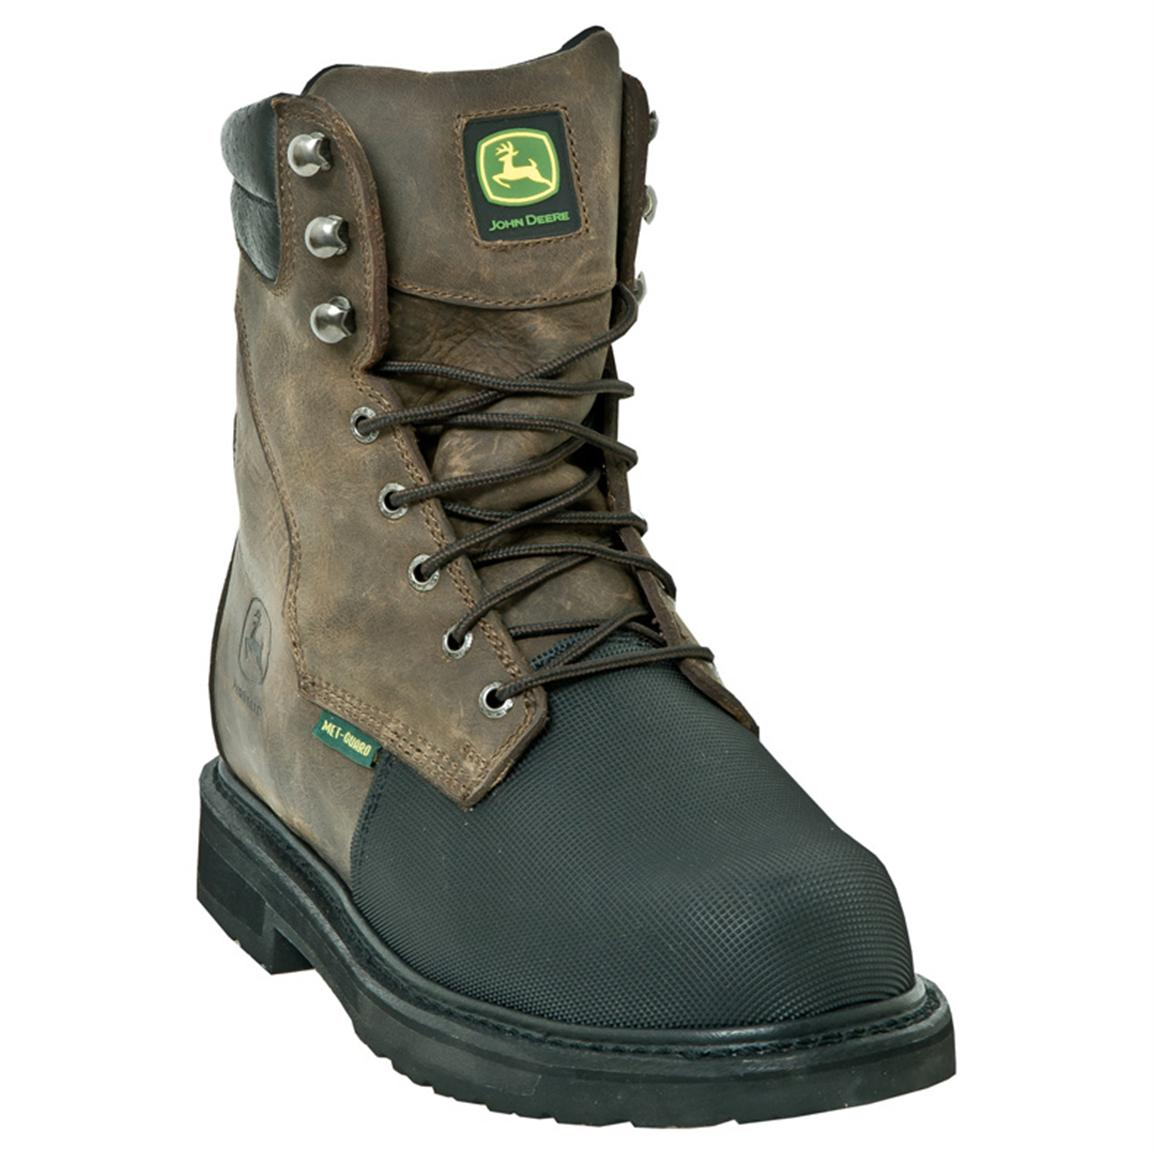 Men's John Deere® 8 inch Flame-resistant Met Guard Composite Toe Work Boots